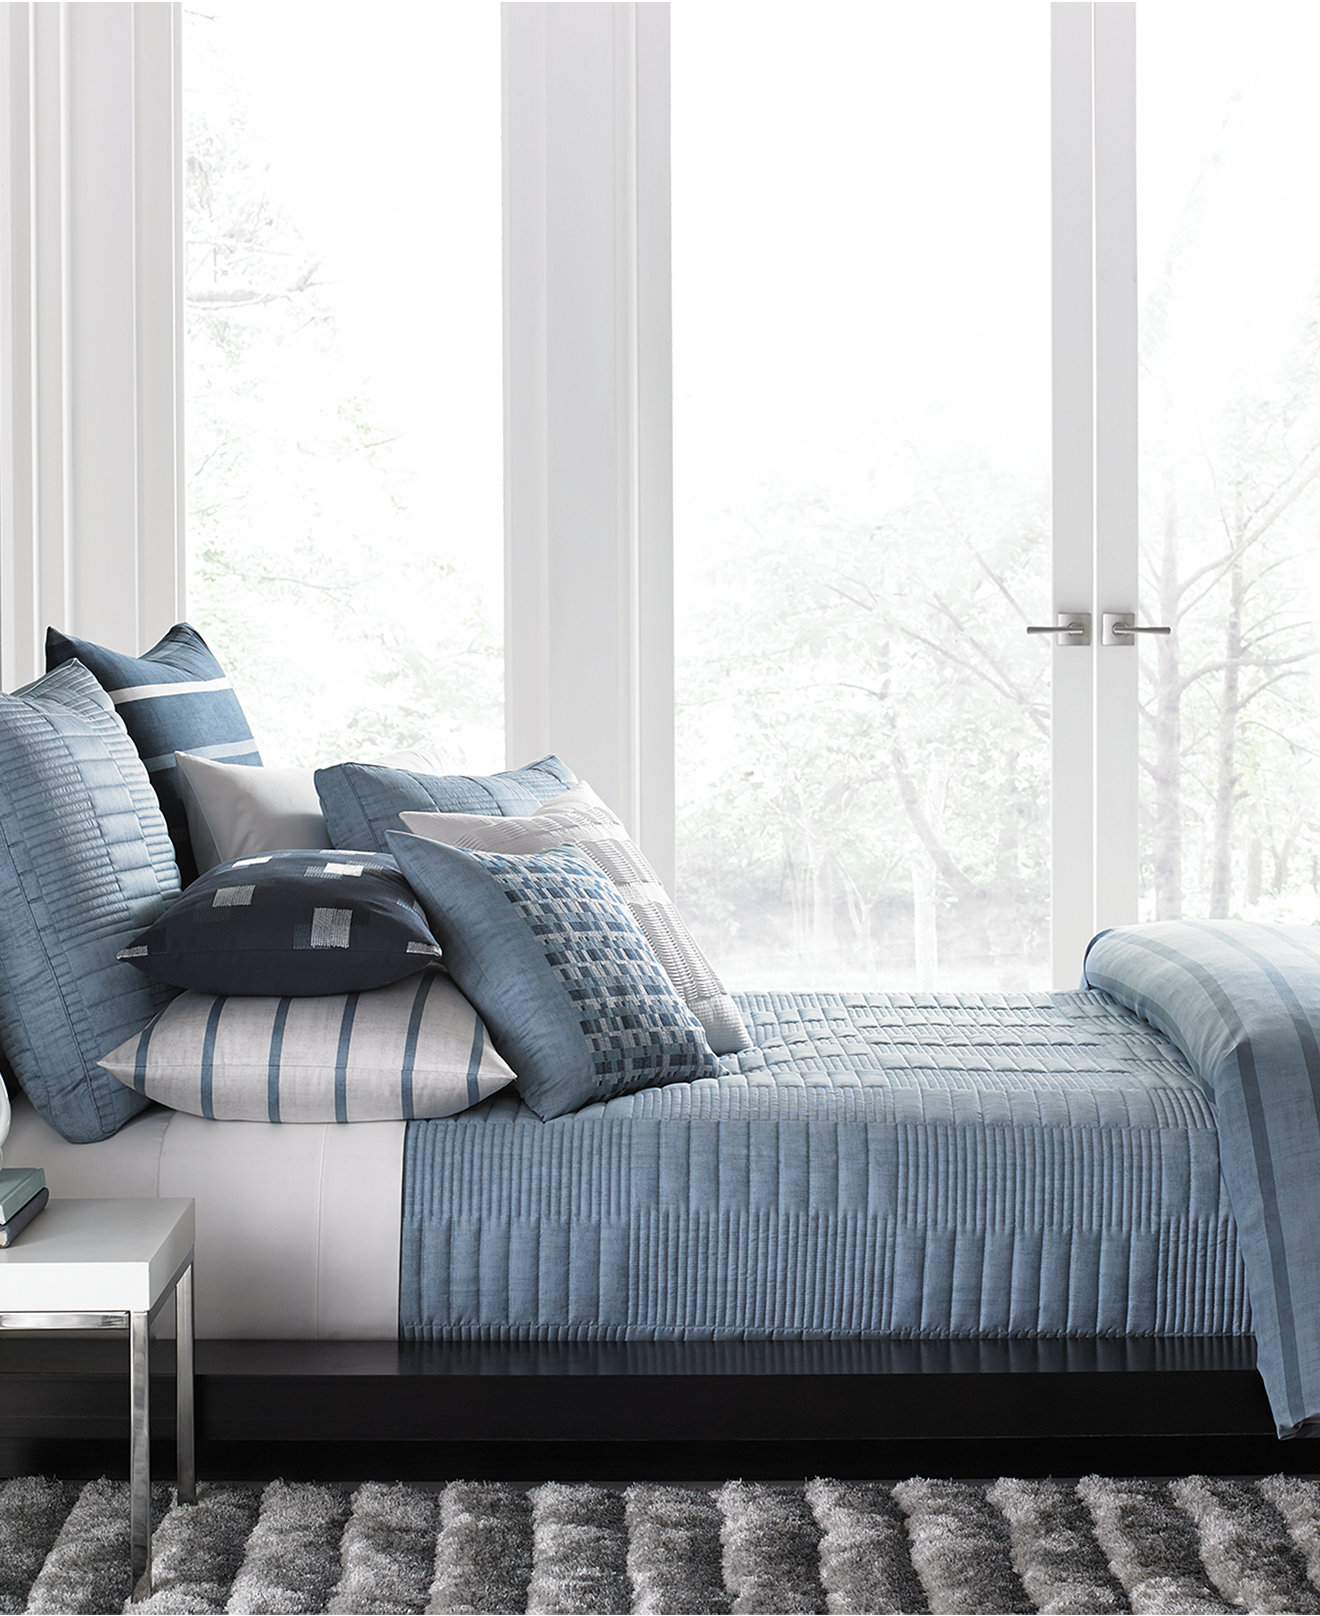 hotel collection bedding collections  macy's - hotel collection colonnade blue coverlet collection created for macy's